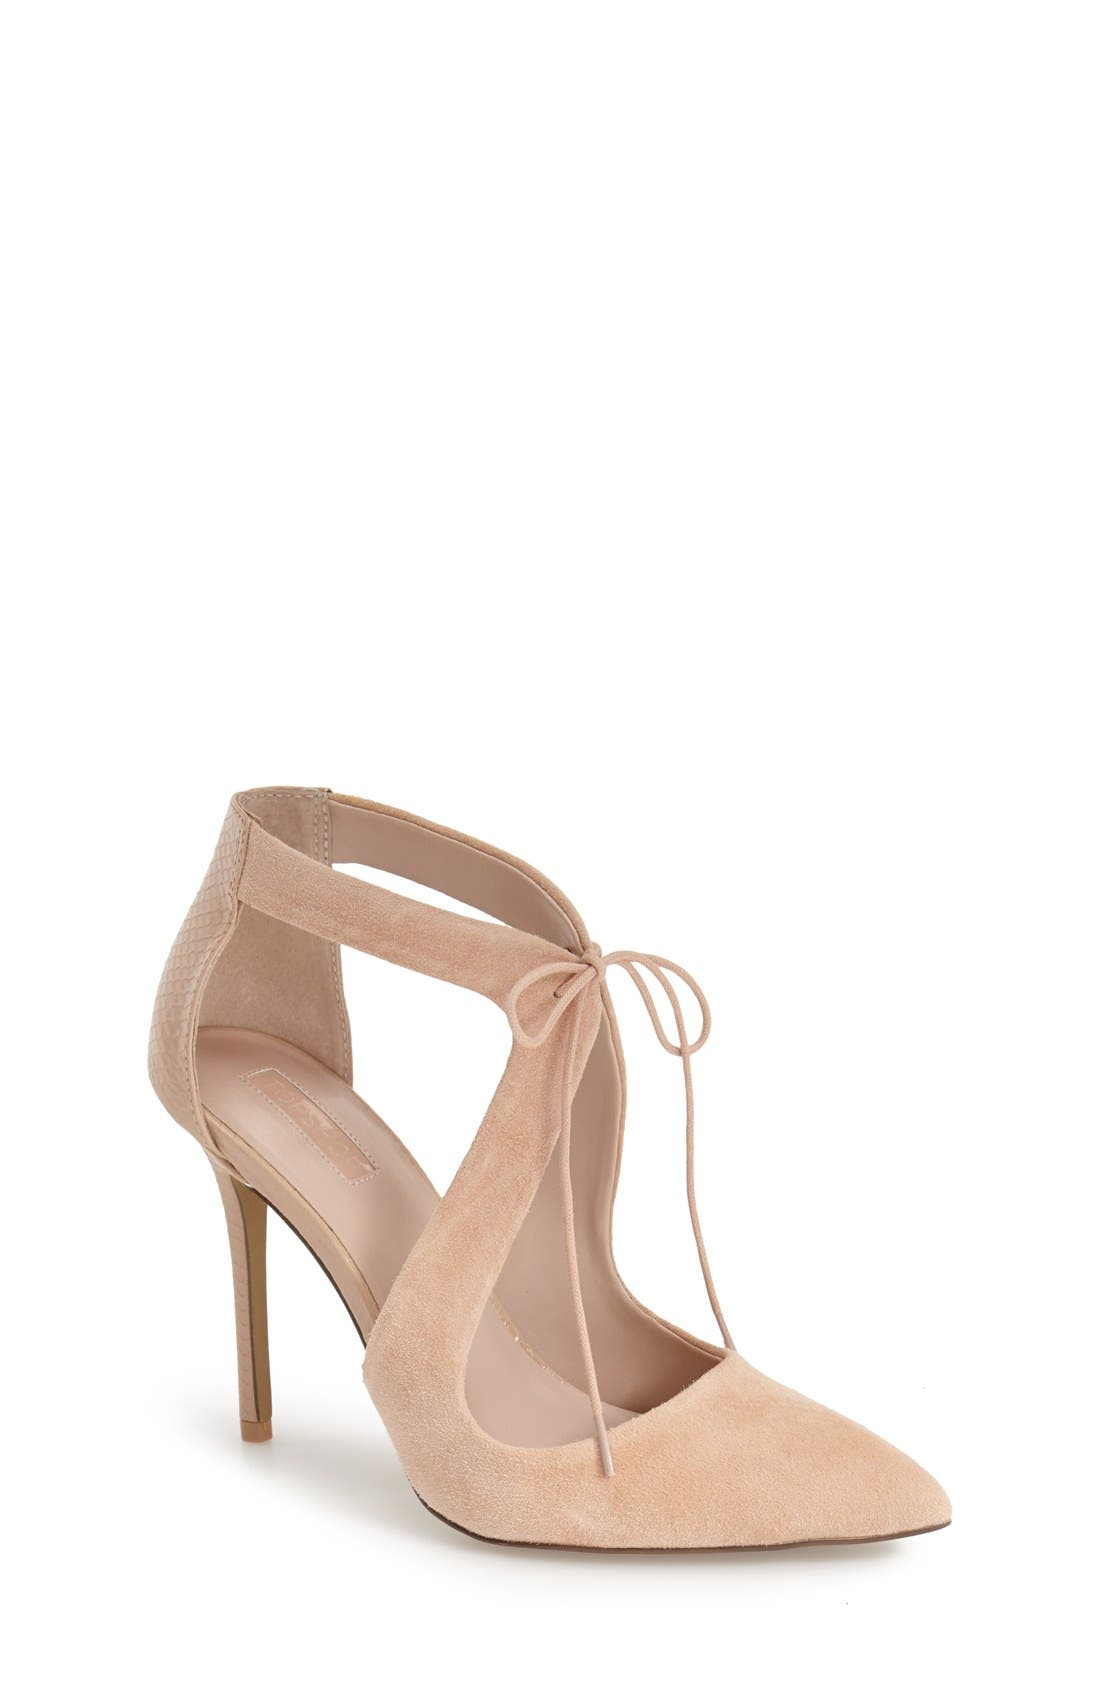 Alternate Image 1 Selected - Topshop 'Genie' Lace-Up Pump (Women)